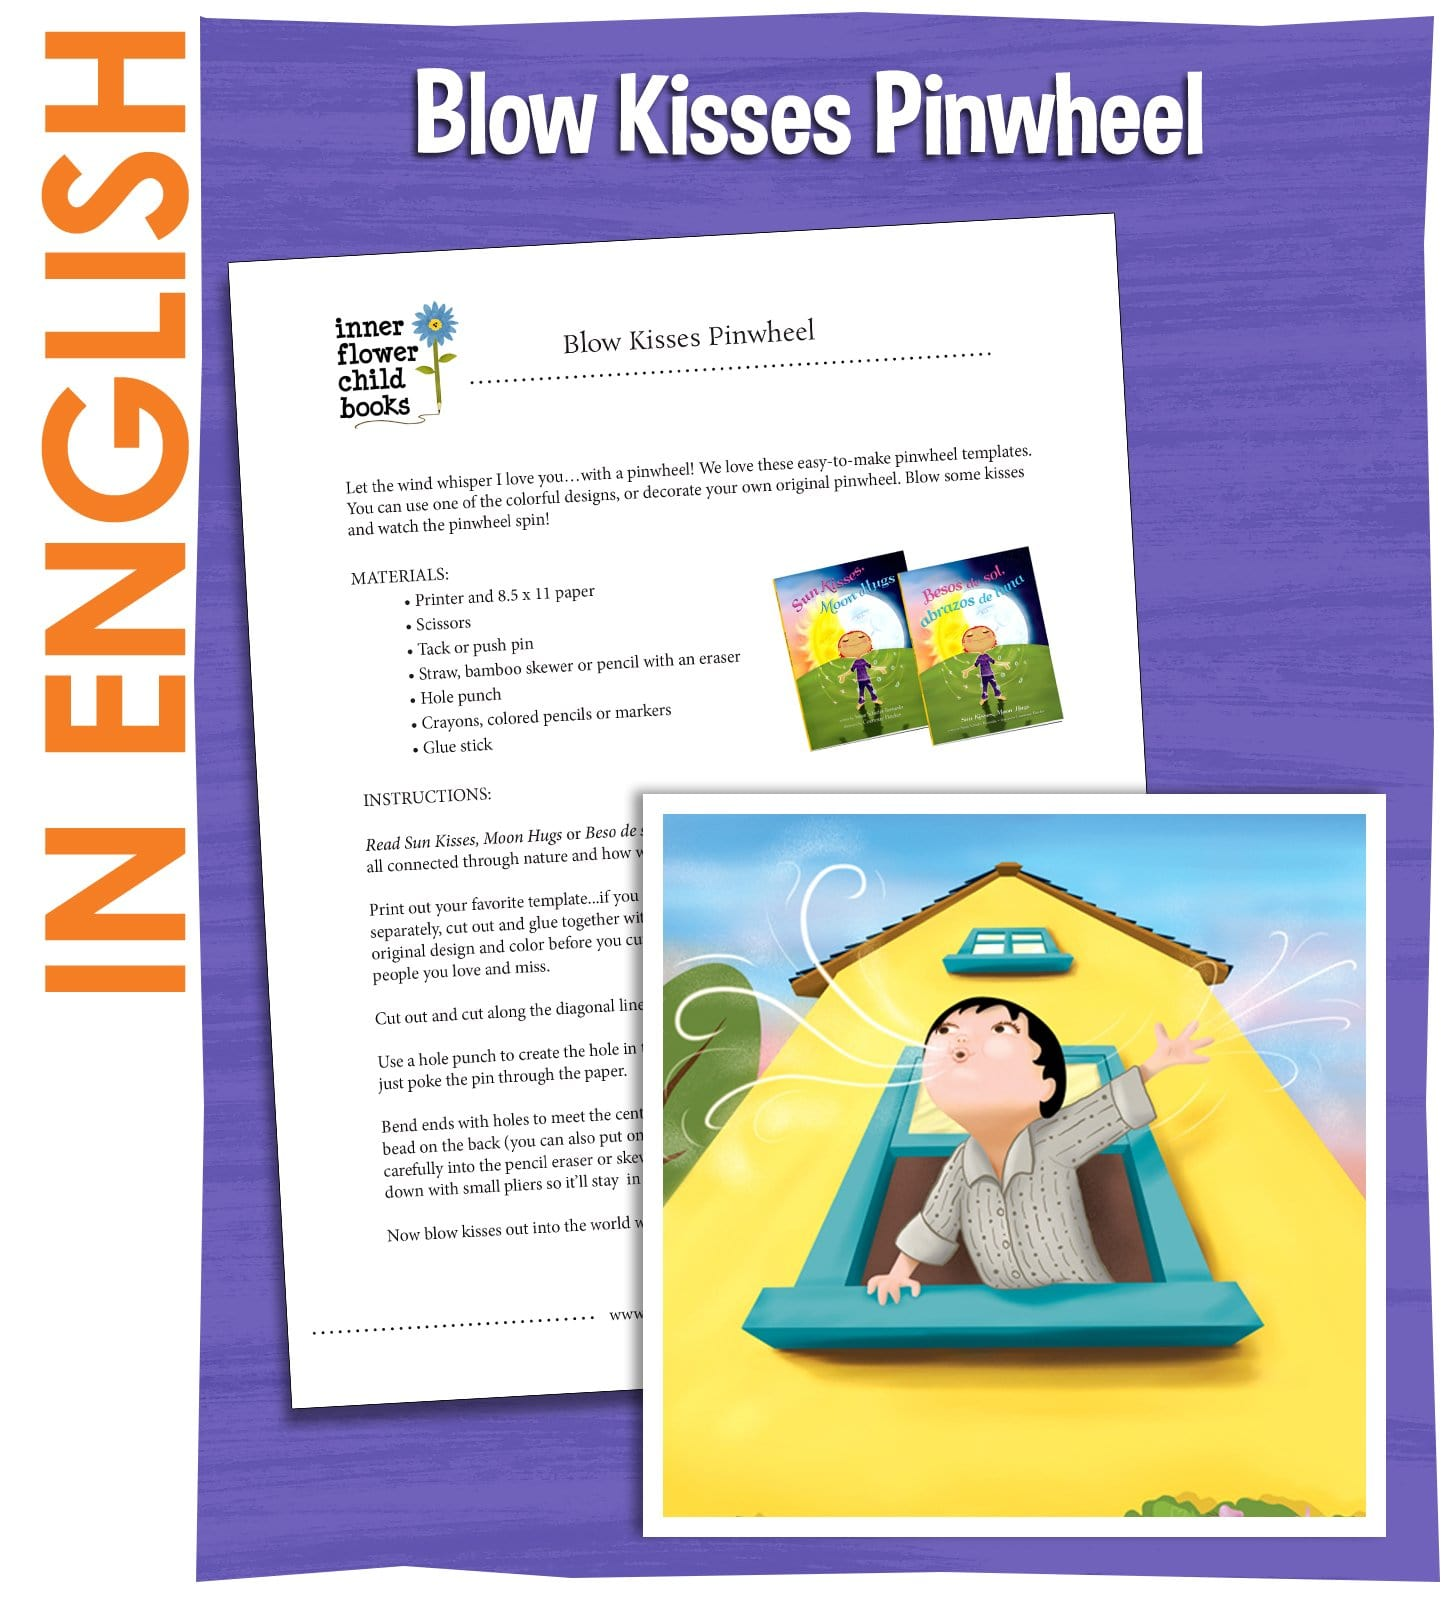 Make a Pinwheel and Blow Kisses - Sun Kisses Moon Hugs